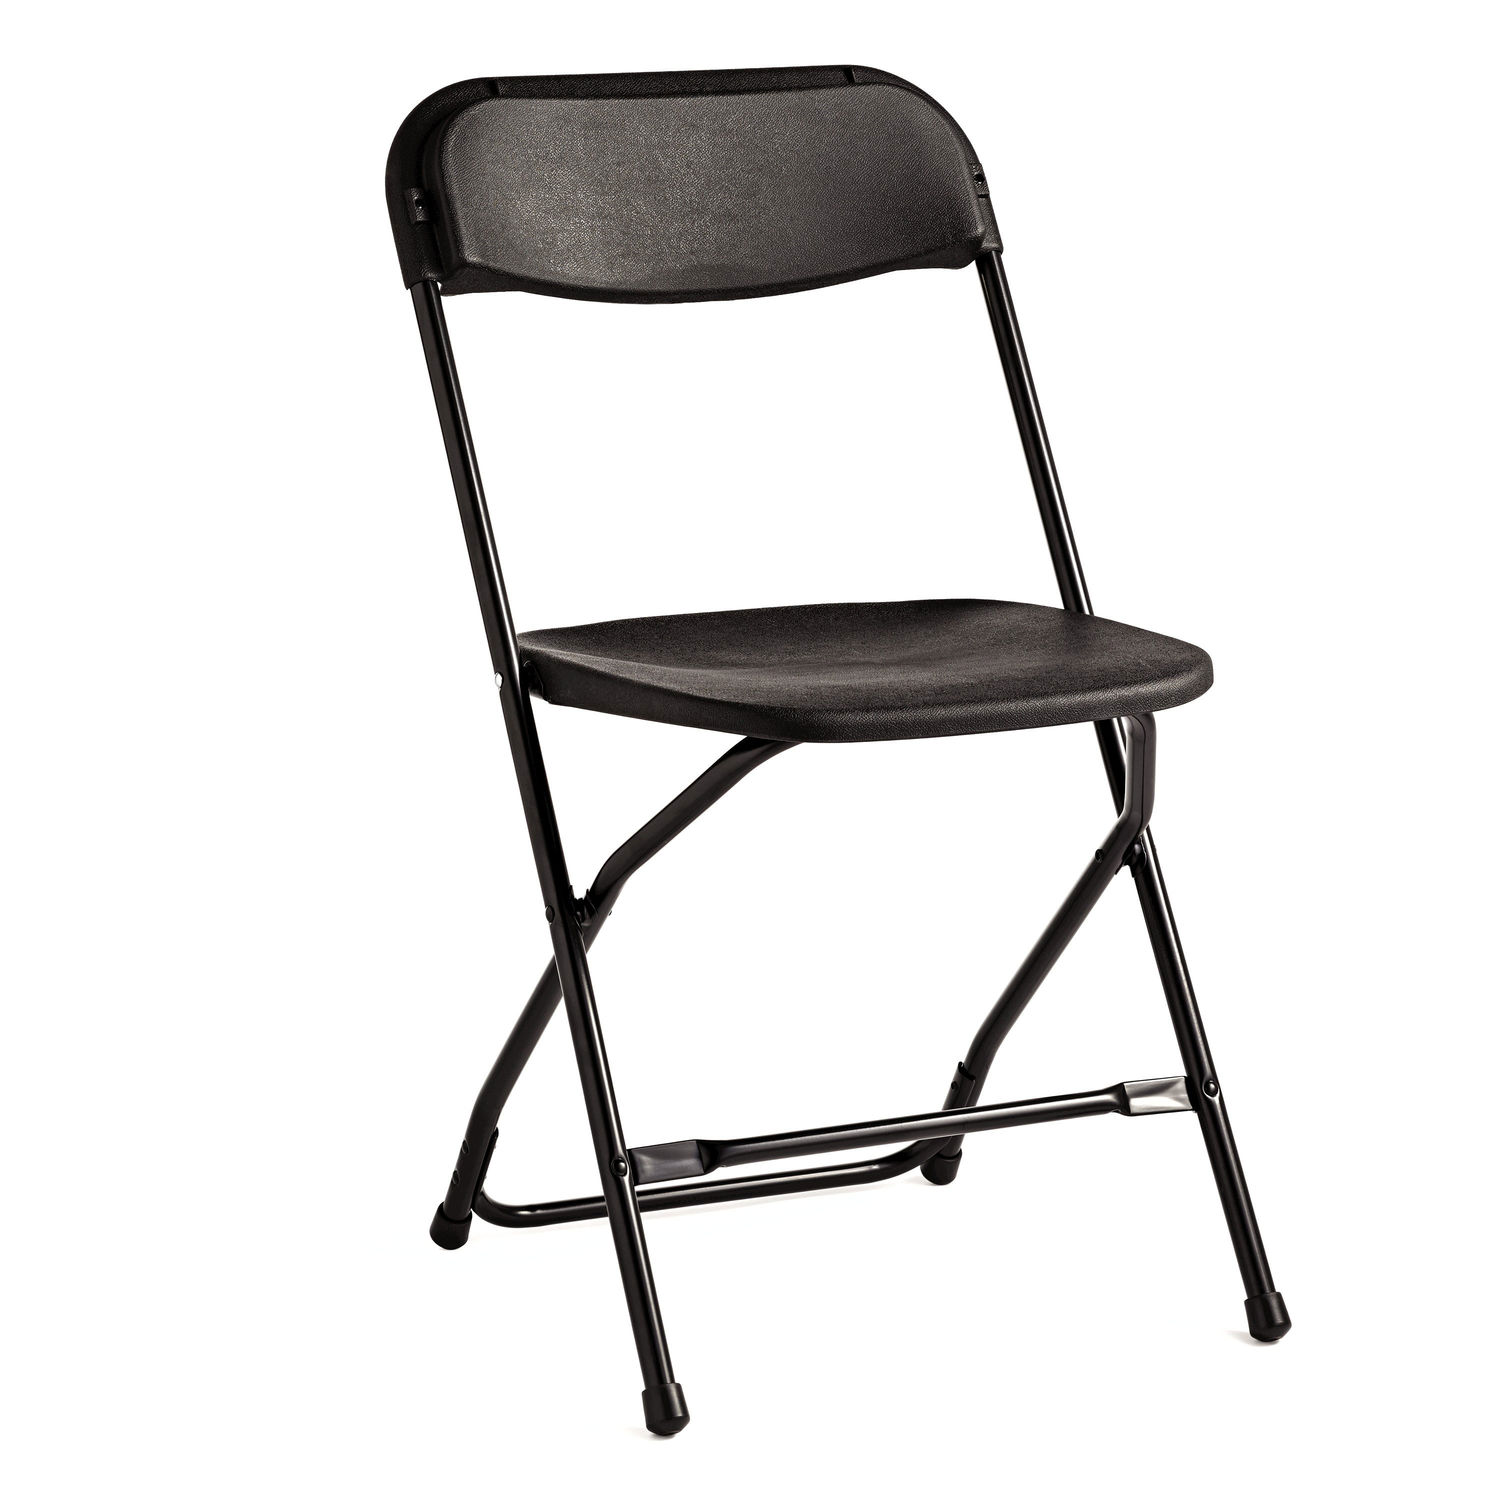 sc 1 st  One Stop Event Rentals & Folding Chairs Black | One Stop Event Rentals